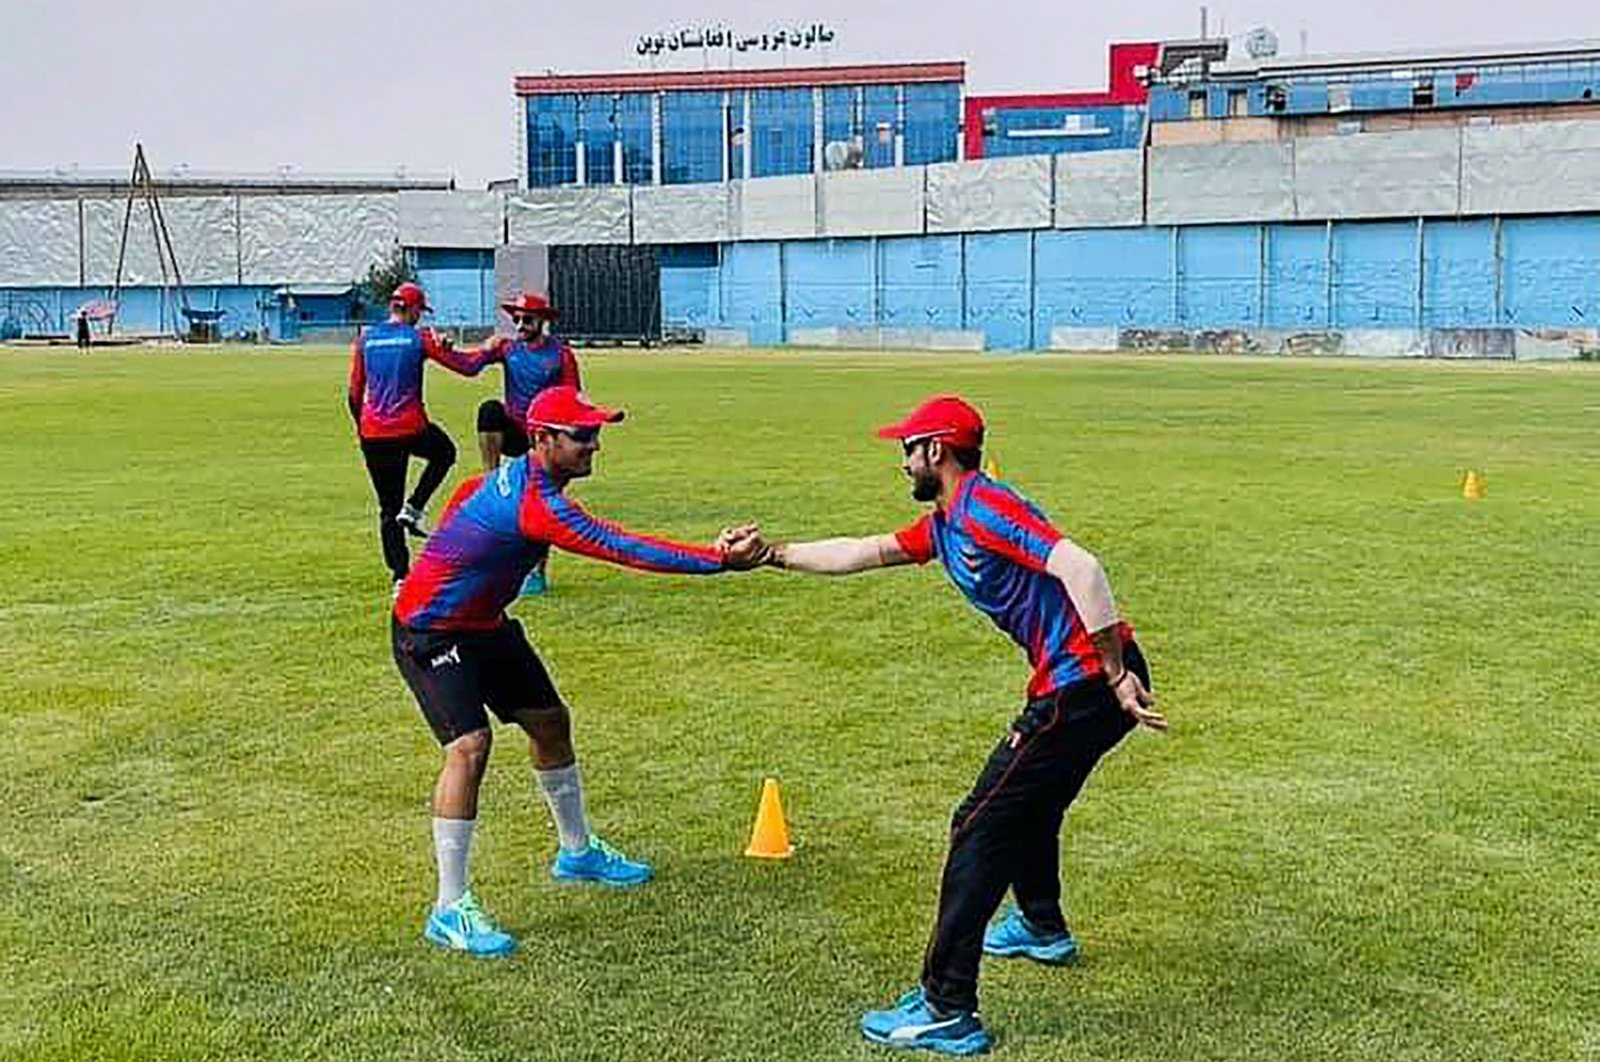 Afghan cricketers train ahead of their one-day series against Pakistan, scheduled to take place in Sri Lanka in two weeks, Kabul, Afghanistan, Aug. 18, 2021. (Afghanistan Cricket Board/AFP Photo)